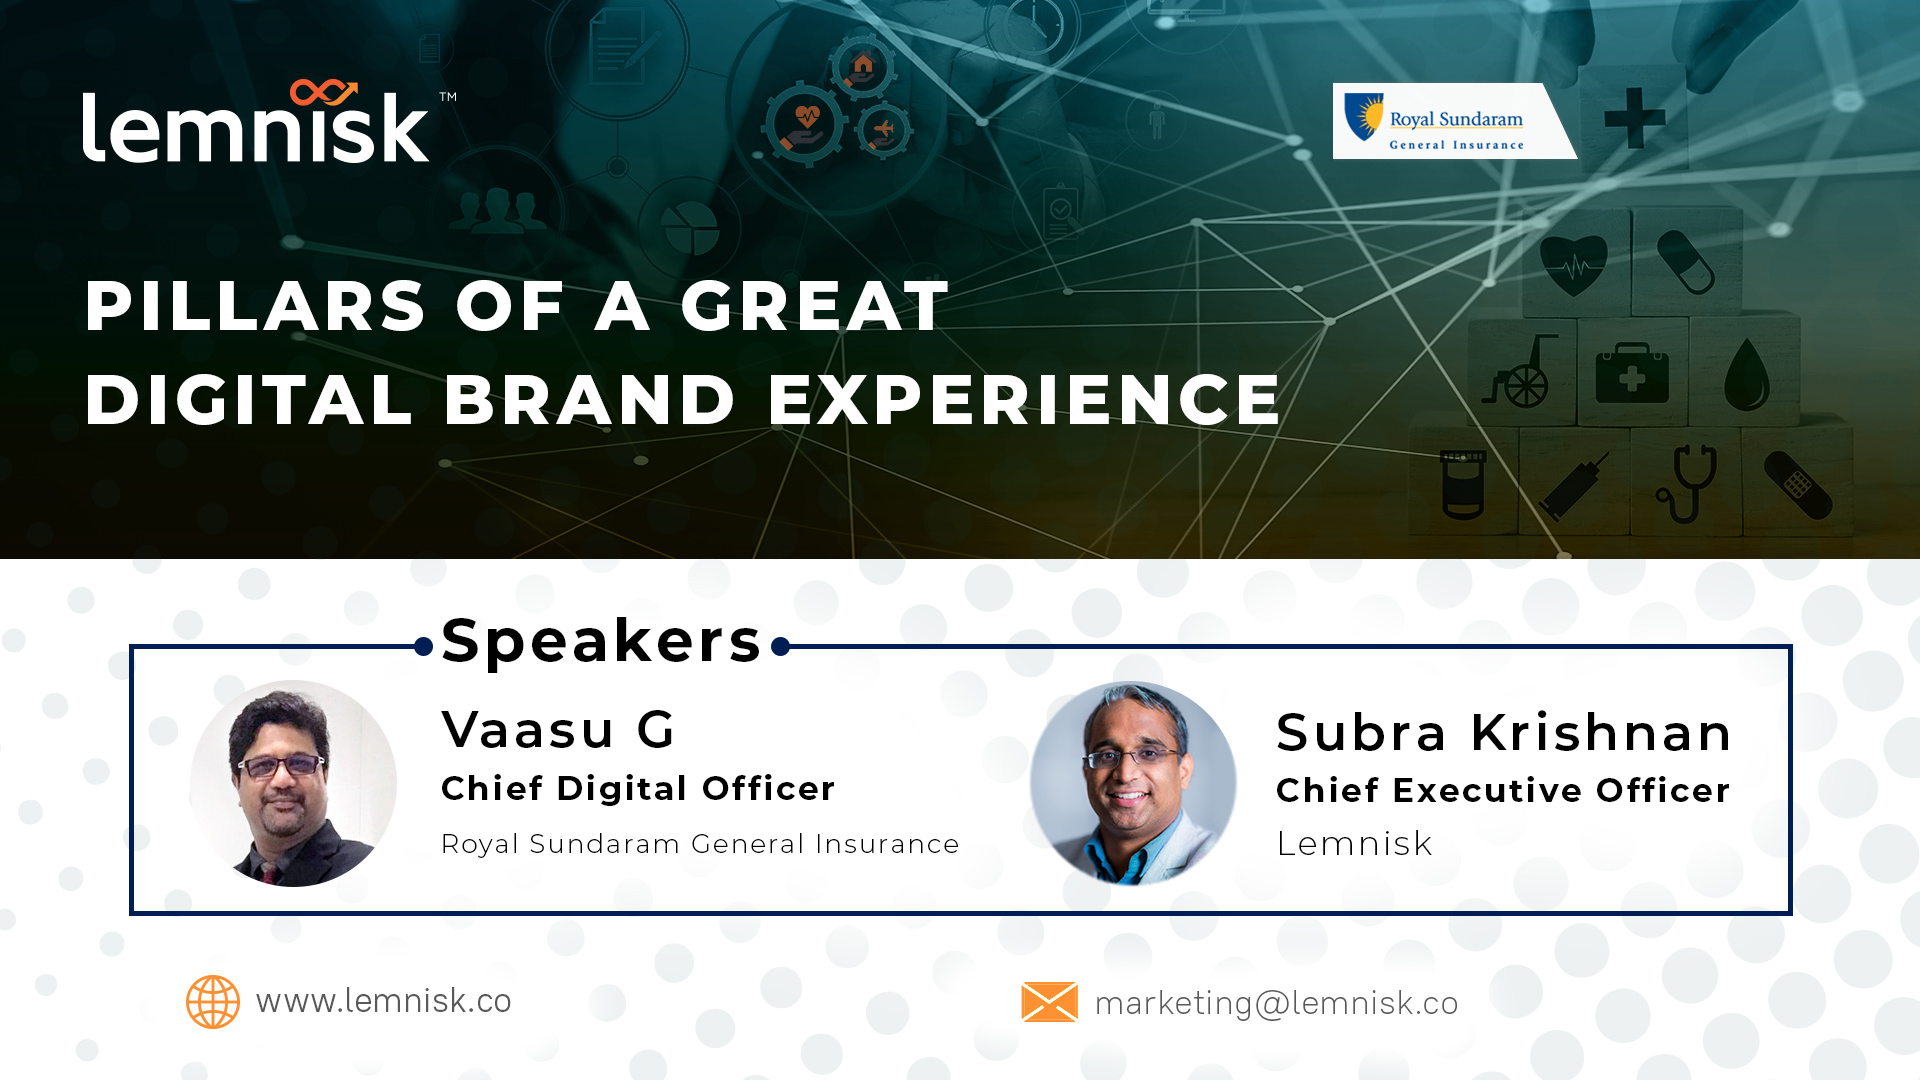 pillars of a great digital brand experience